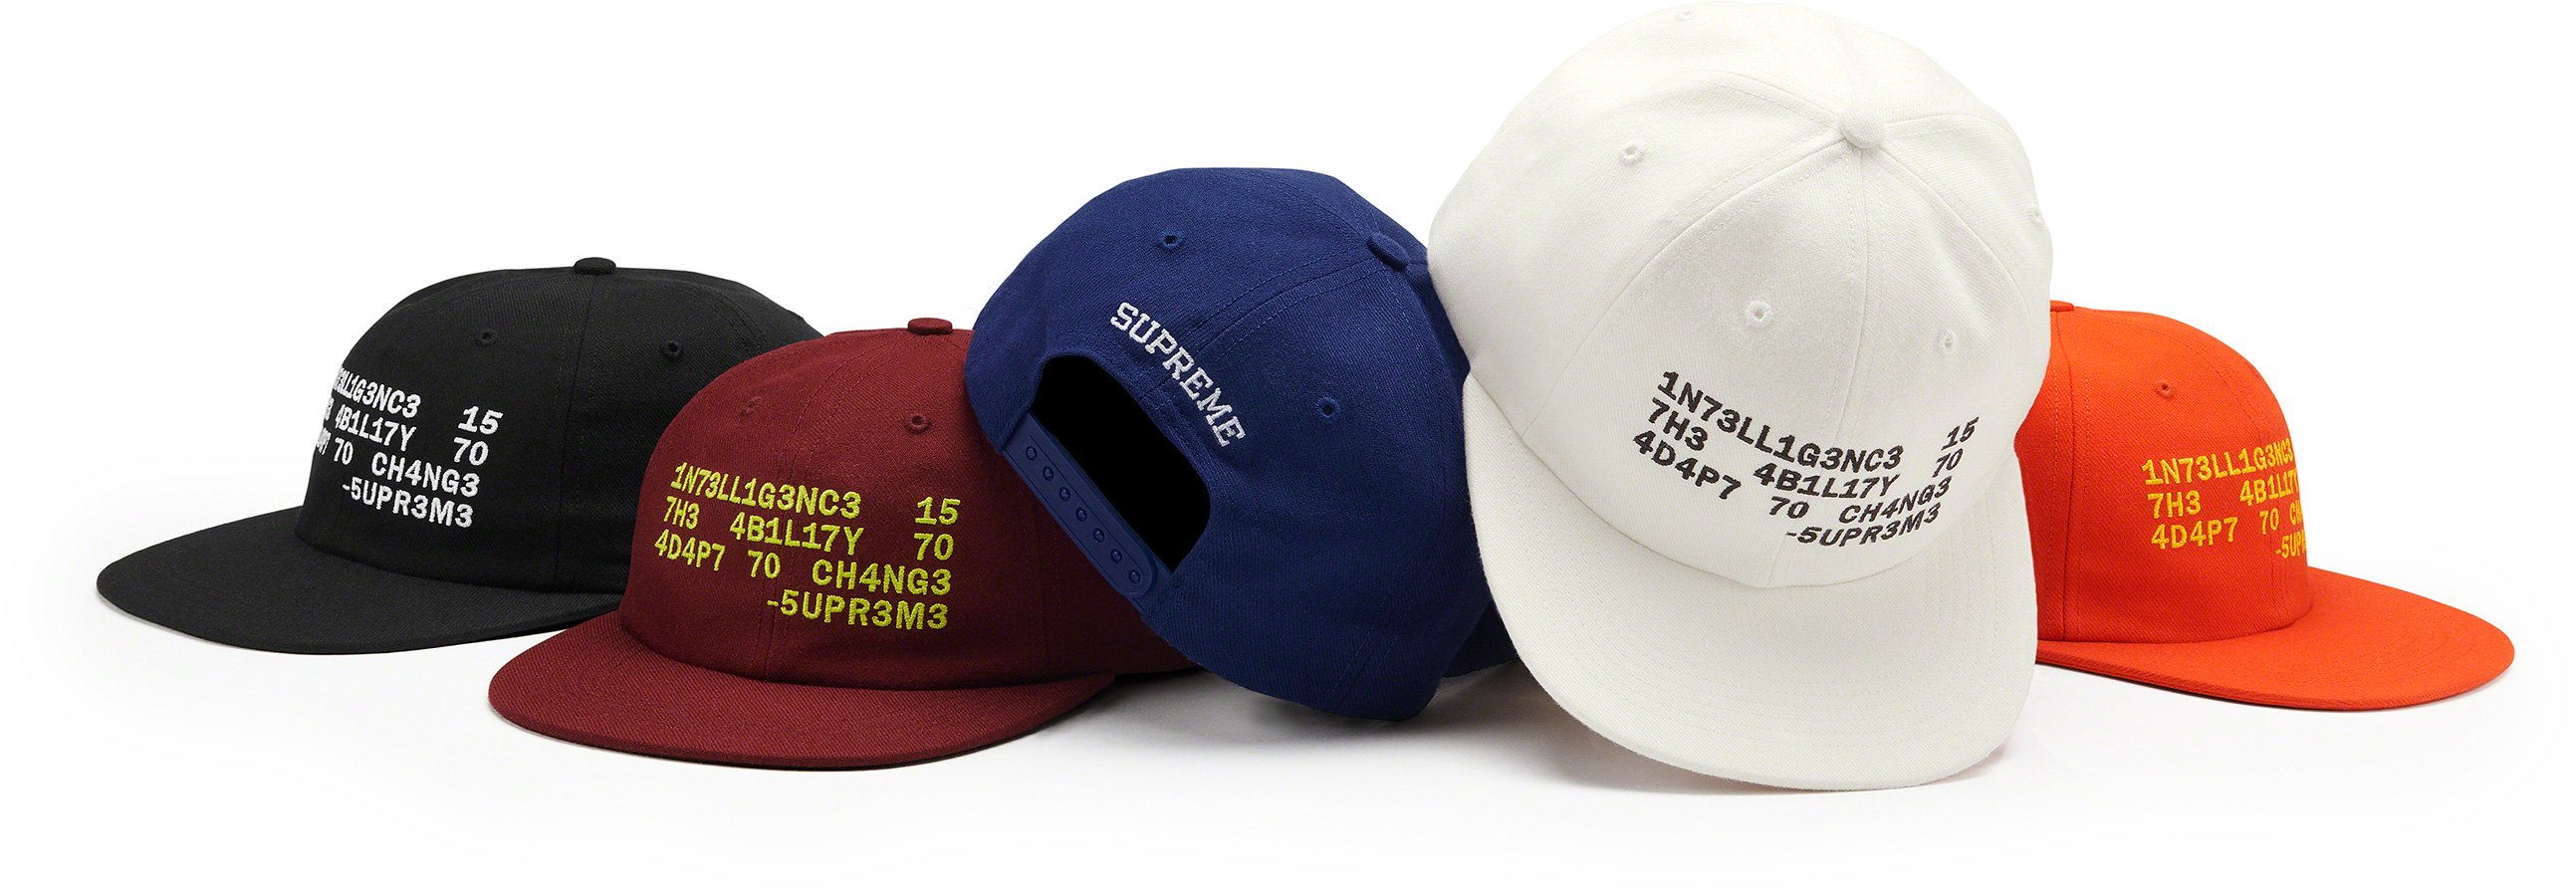 supreme-20ss-spring-summer-intelligence-6-panel